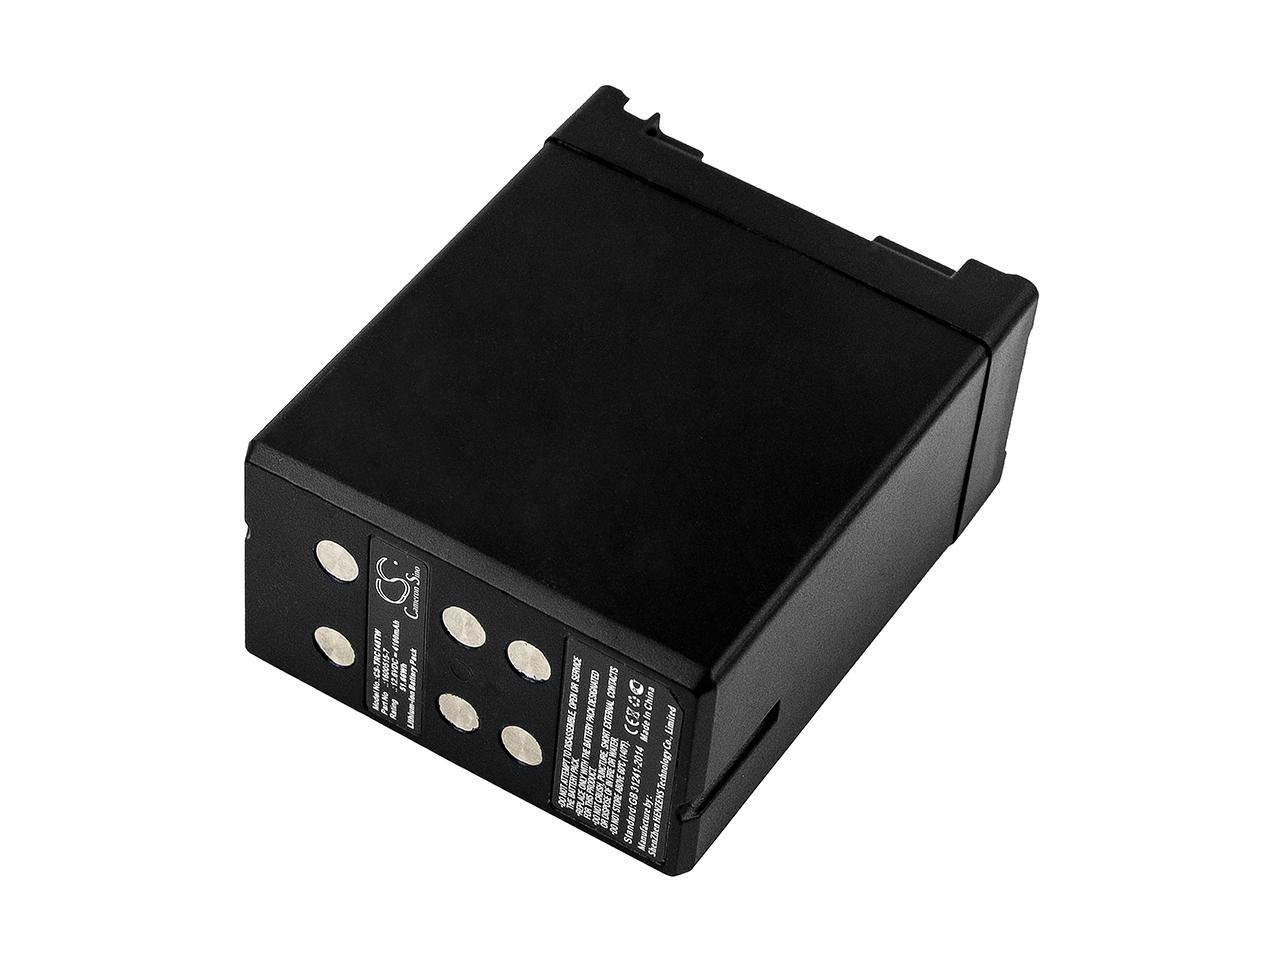 Thales 1600515 7 6140 01 487 1153 Replacement Battery For Thales Rc 148 Newegg Com